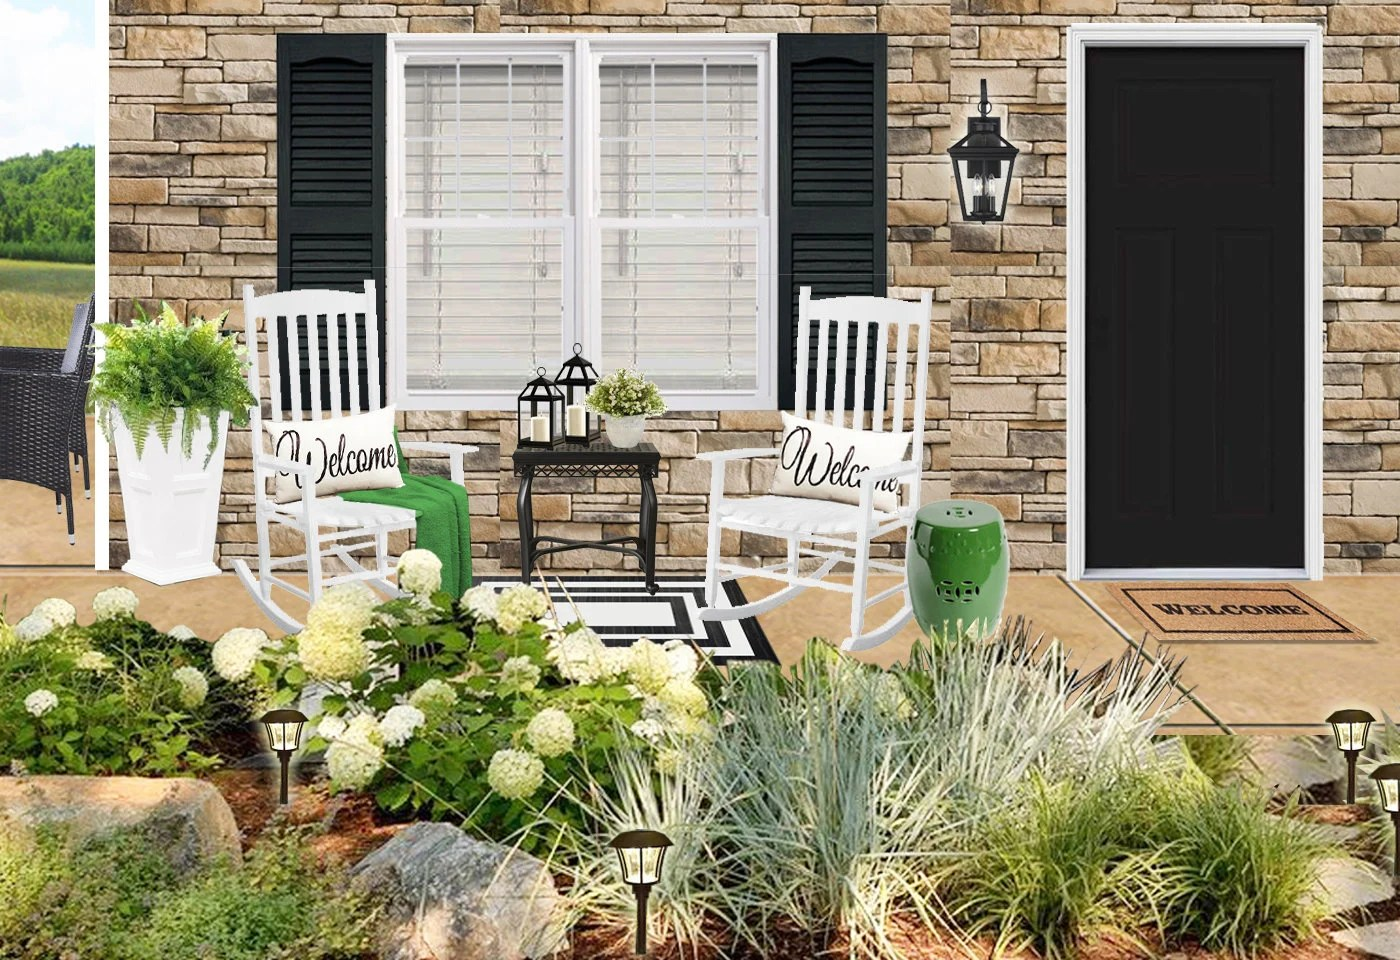 3d rendering front patio styling front porch dekor front porch interior design hamptons porch style southern porch